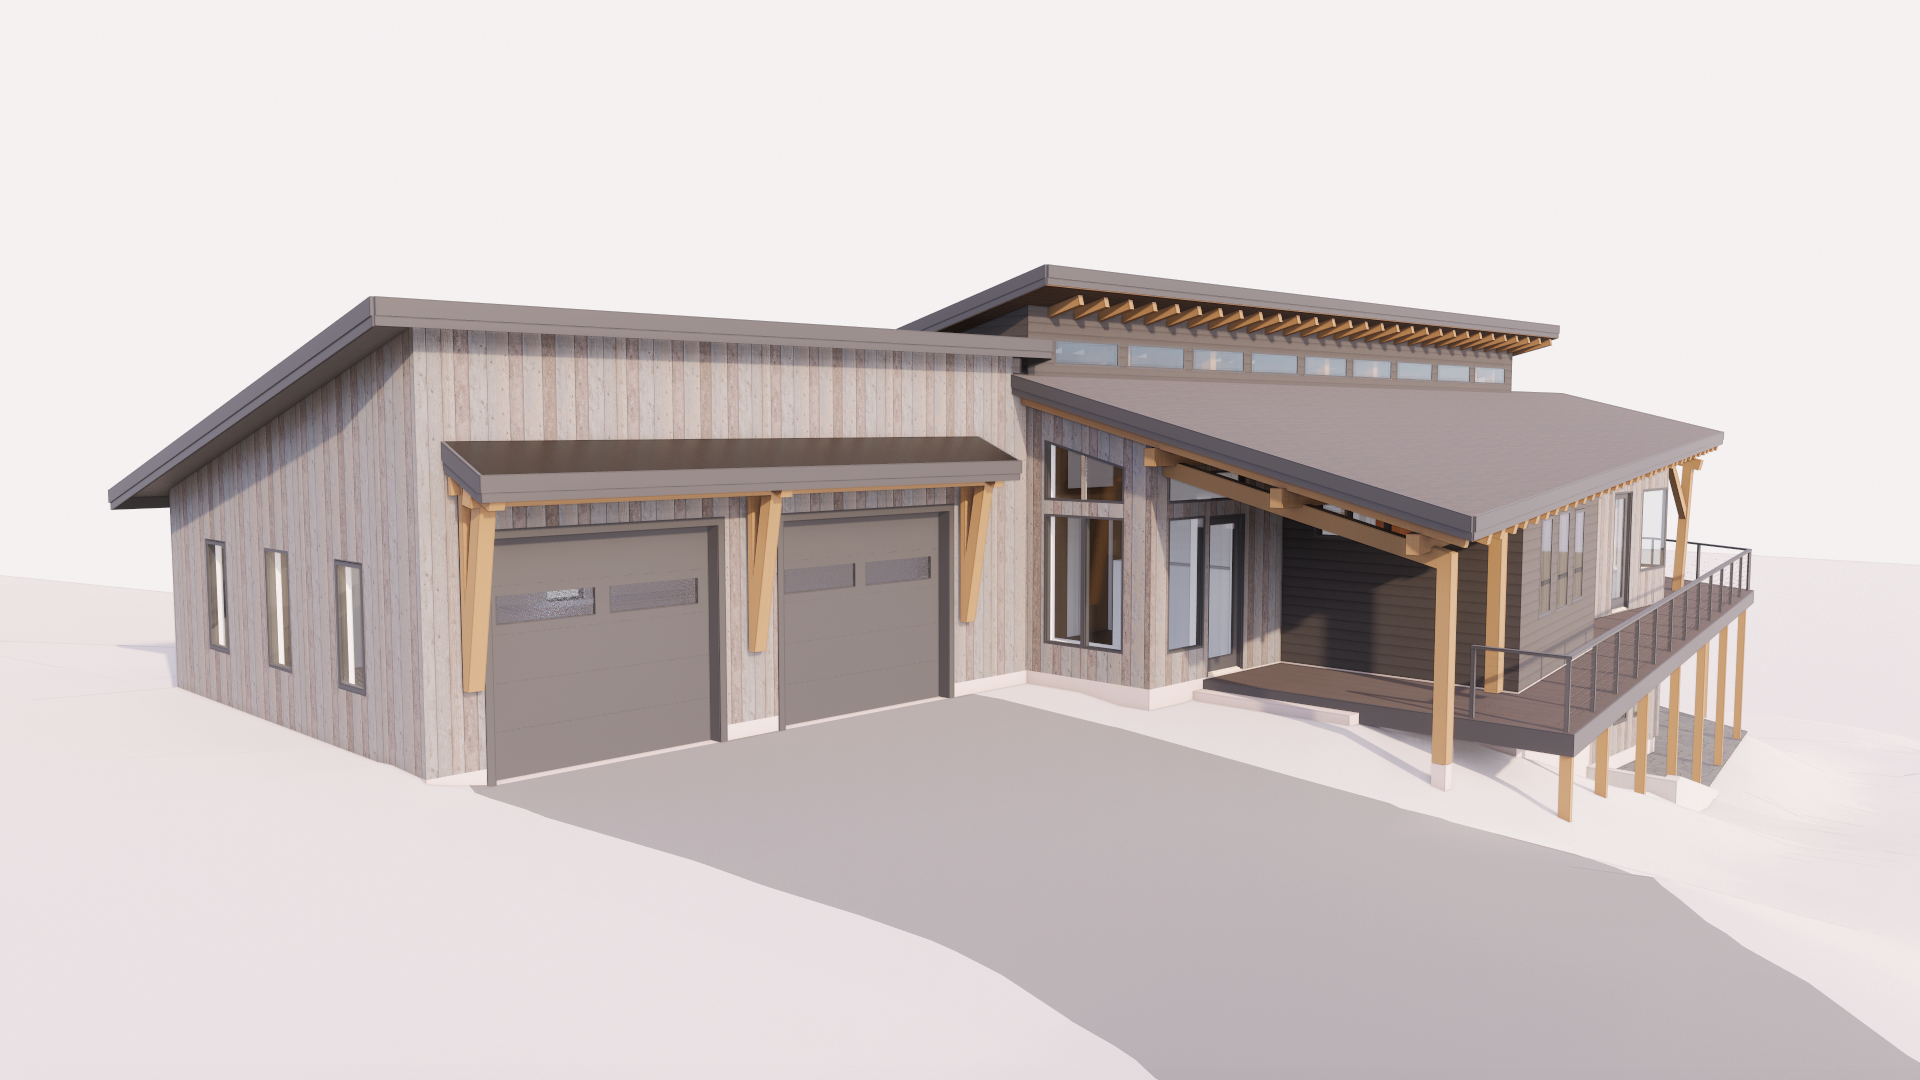 Timber frame lake home design entry view with garage.